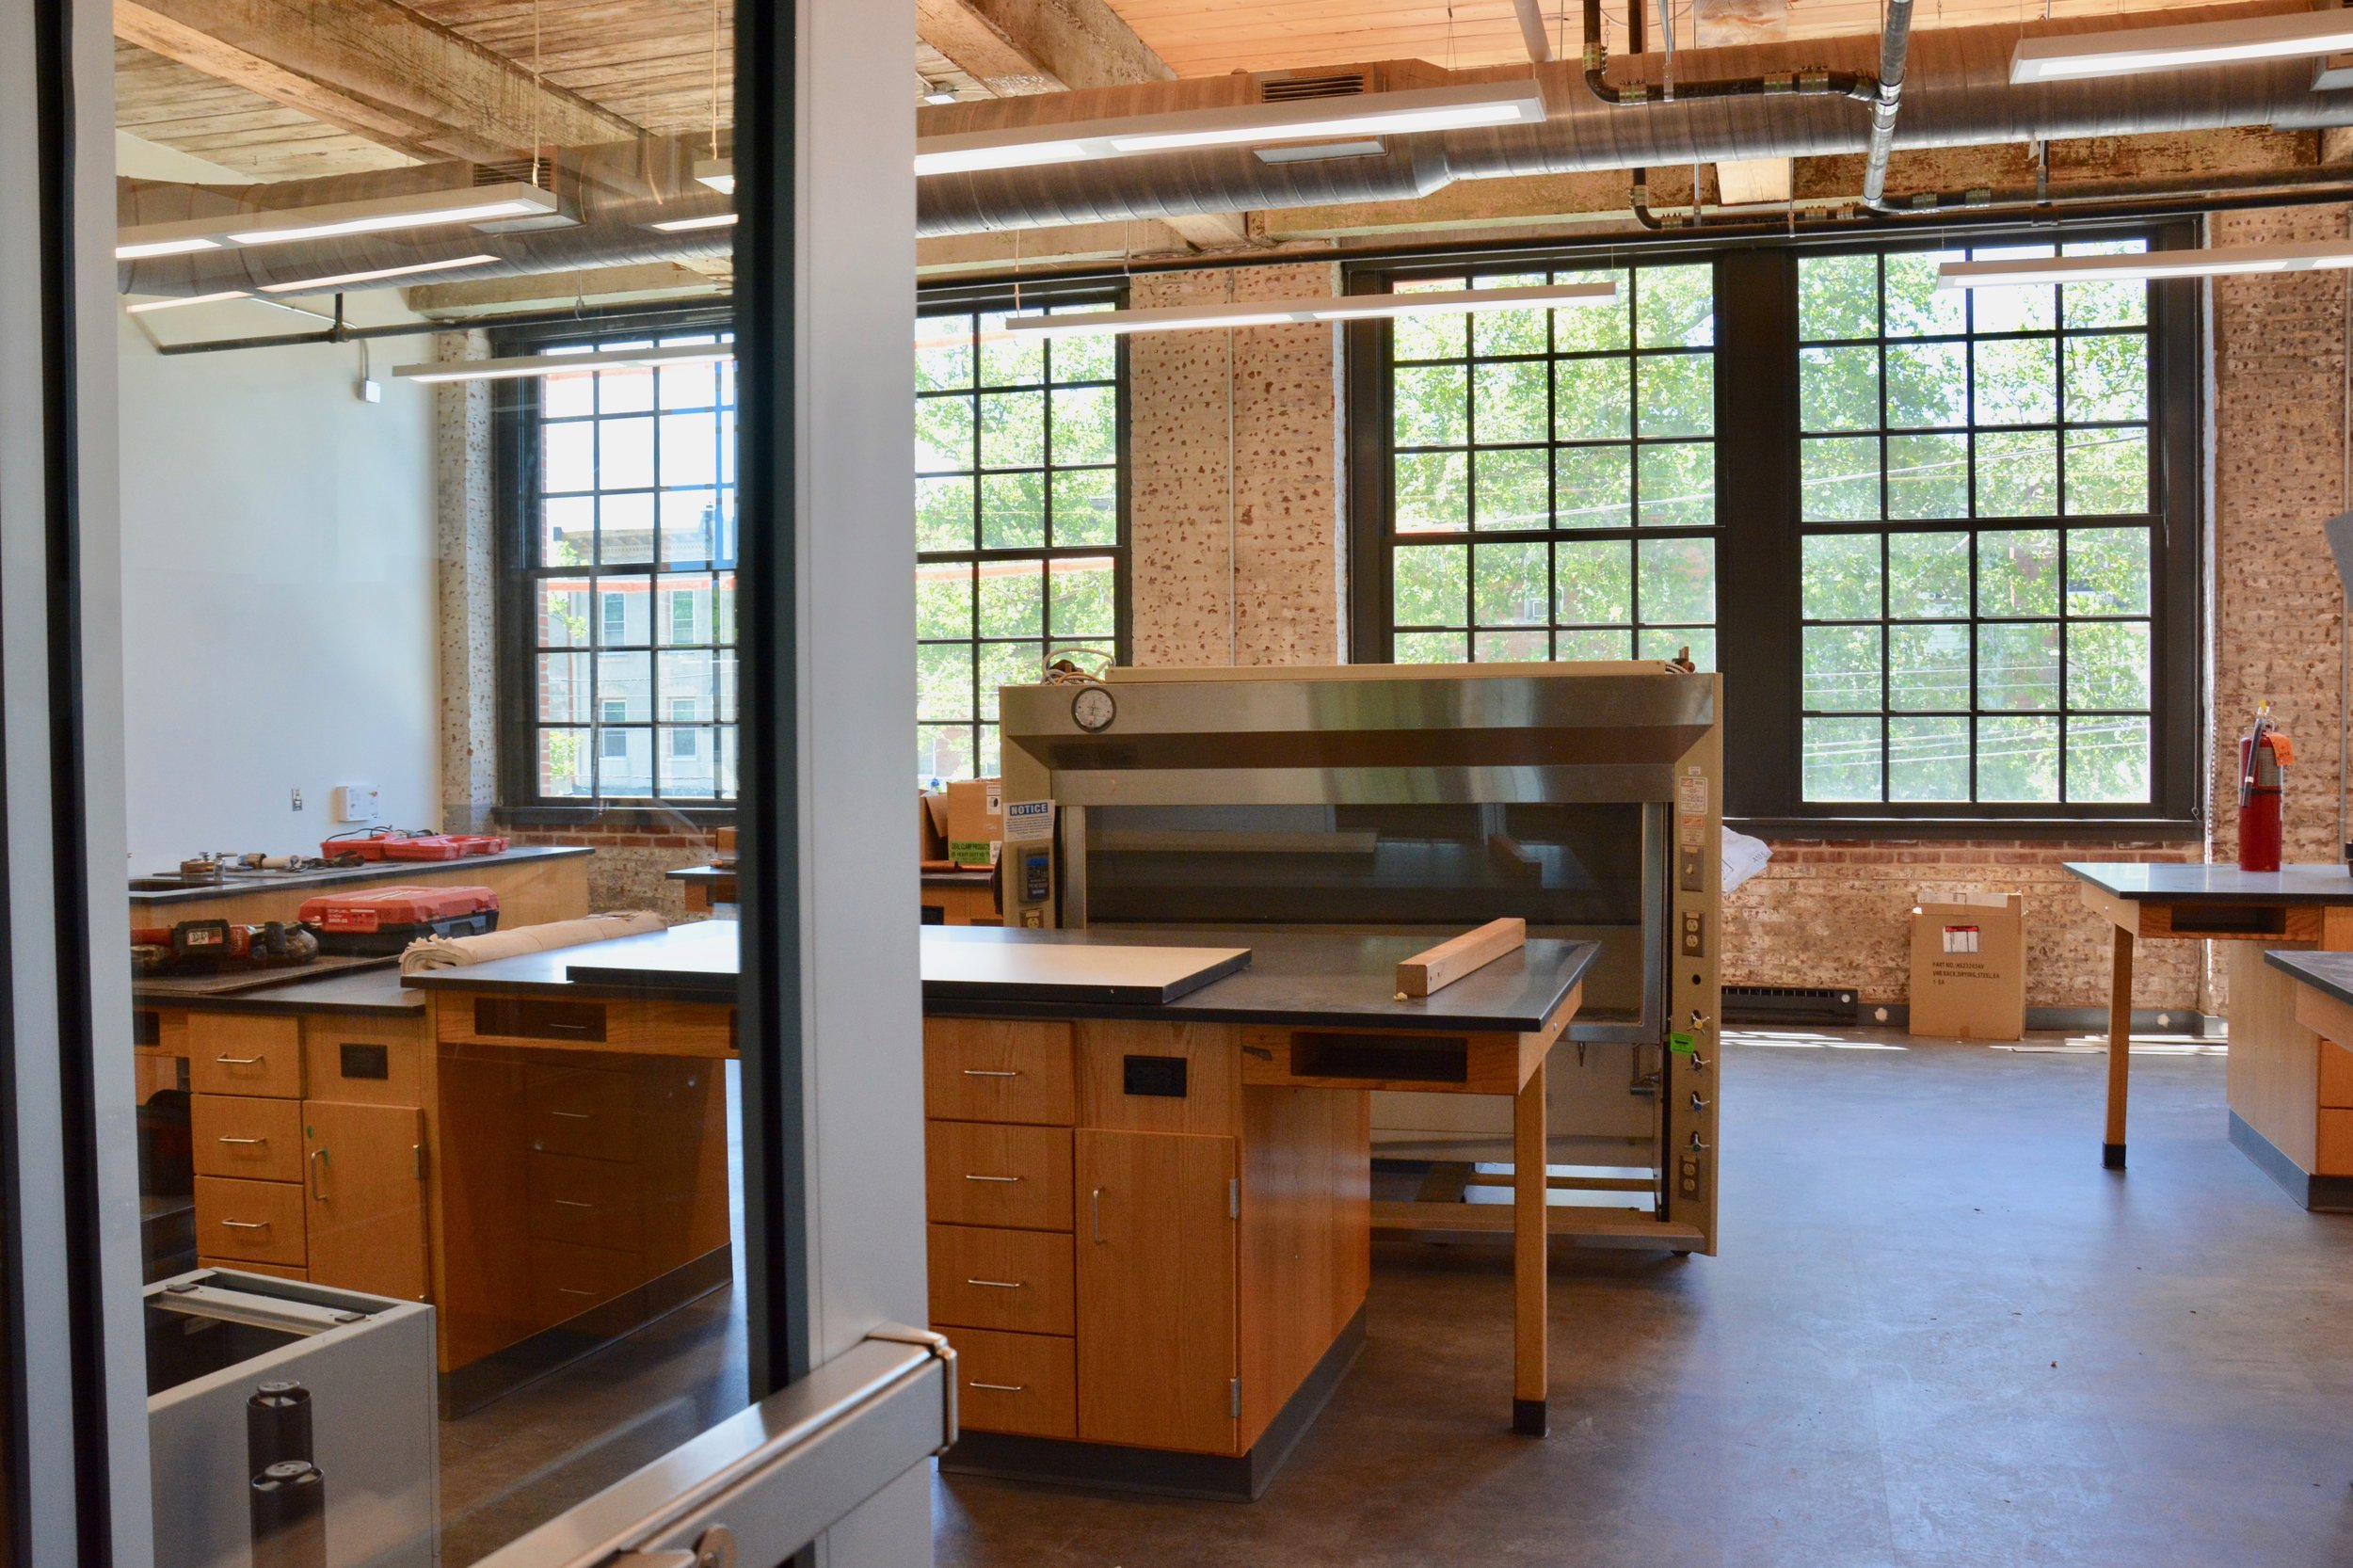 Chemistry Lab in the factory, which will have lab tables and lecture style seating.